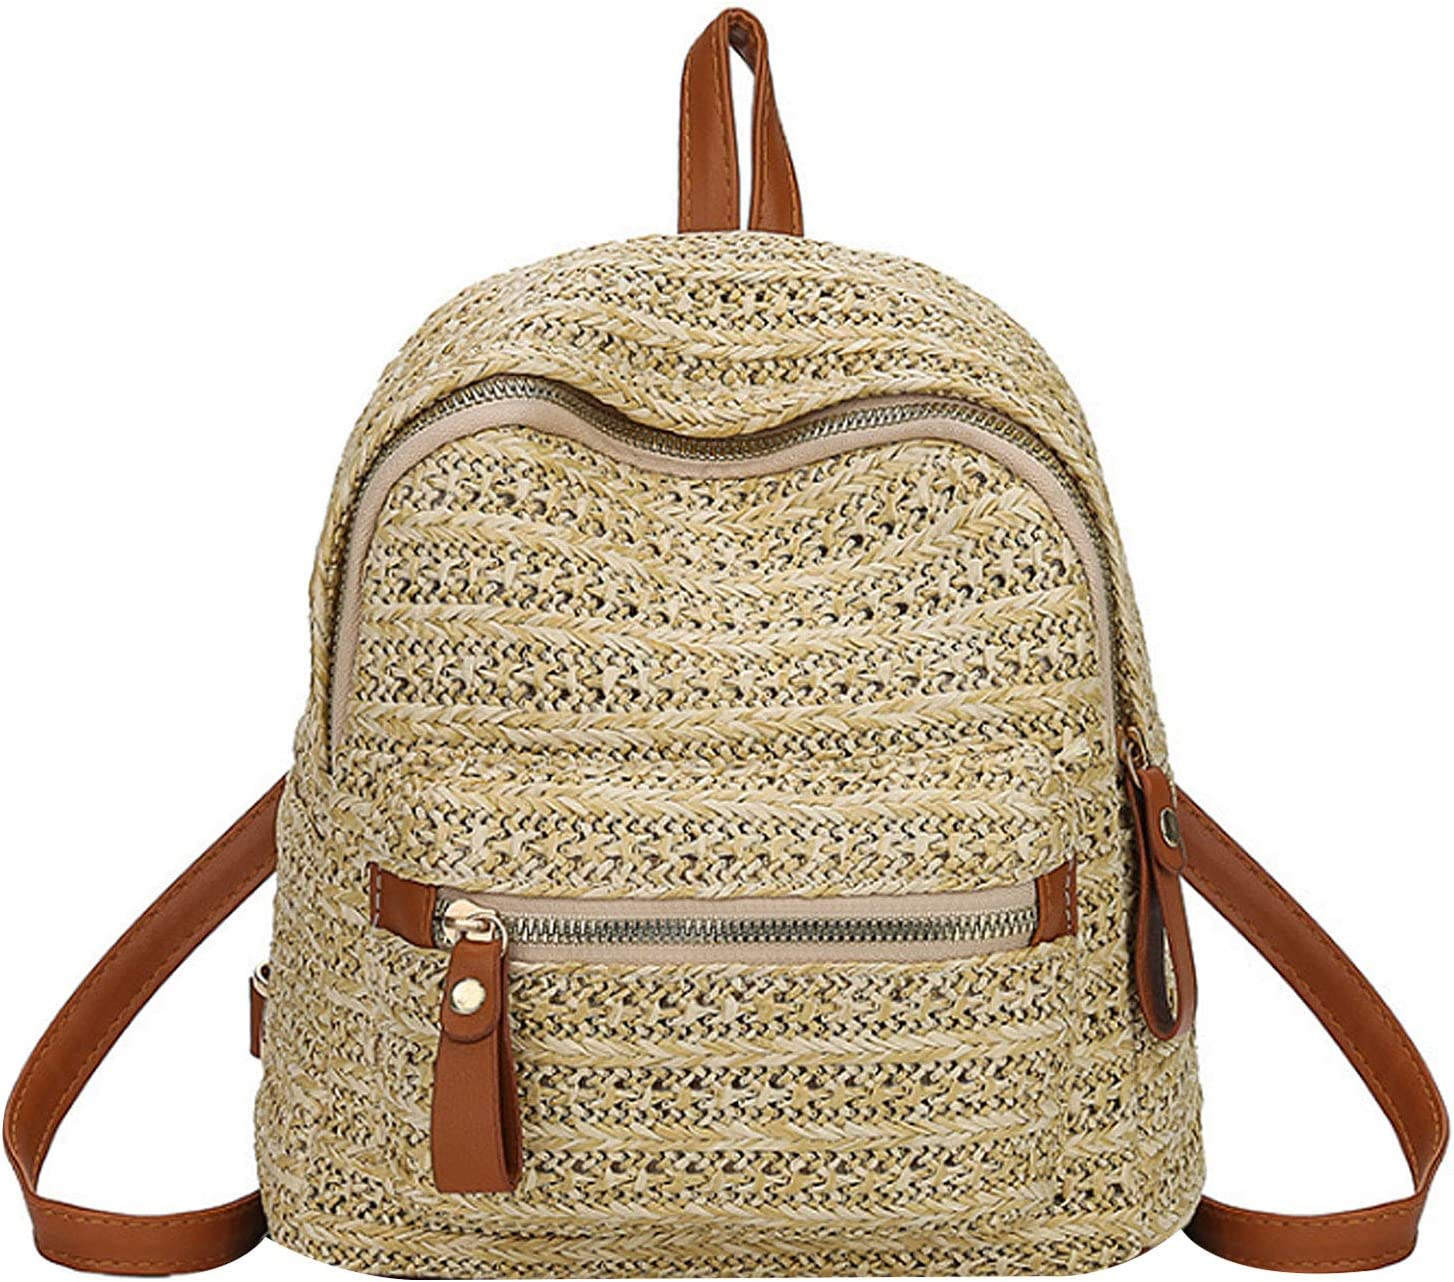 ZLM BAG US Handwoven Straw Backpack Women for Bac Bohemian Max 77% OFF Bargain Beach